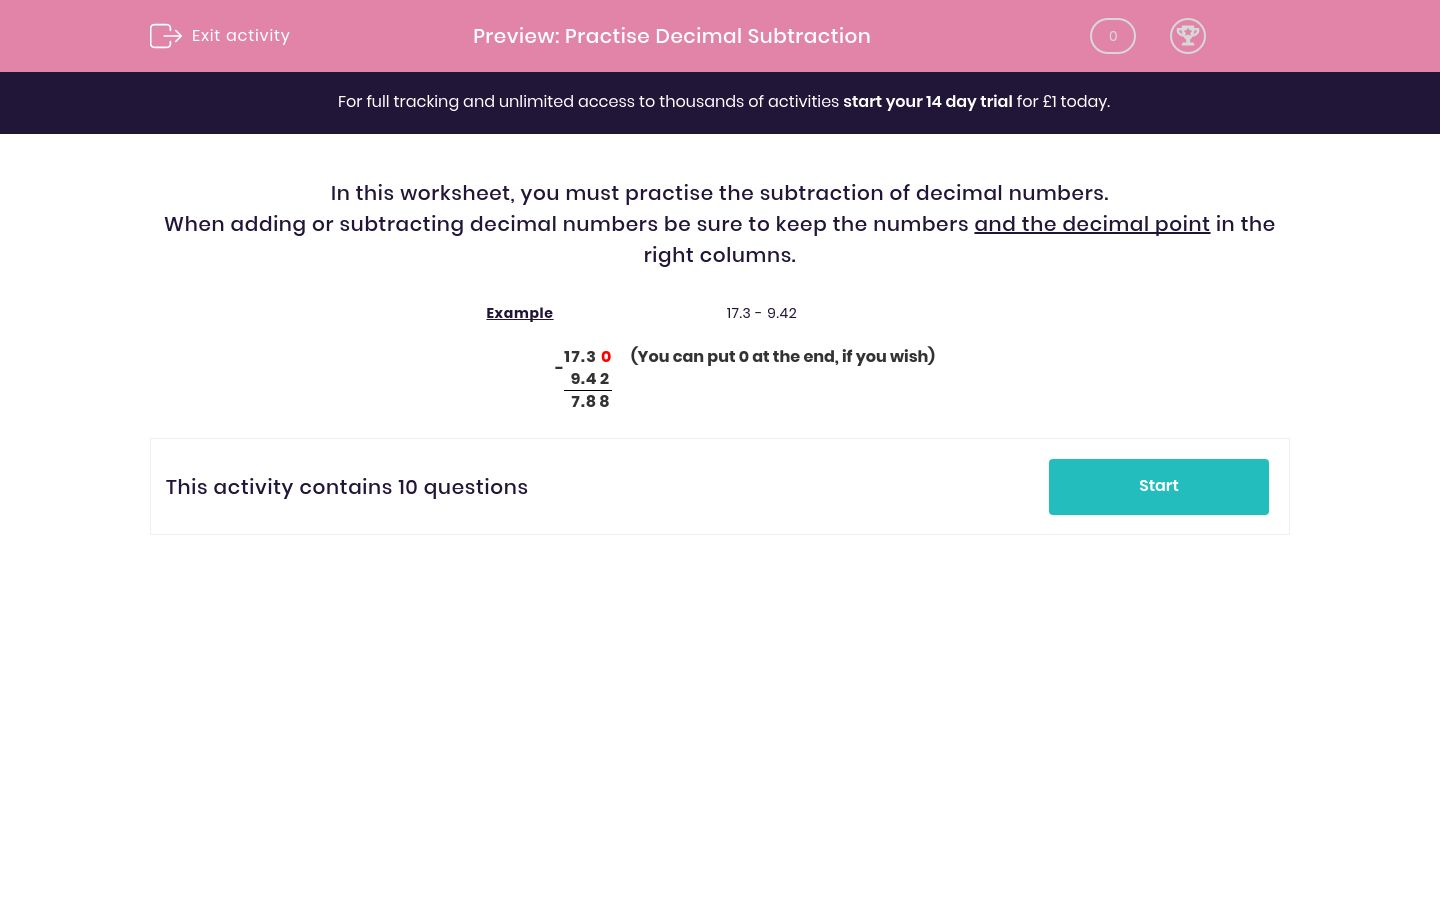 'Practise Decimal Subtraction' worksheet